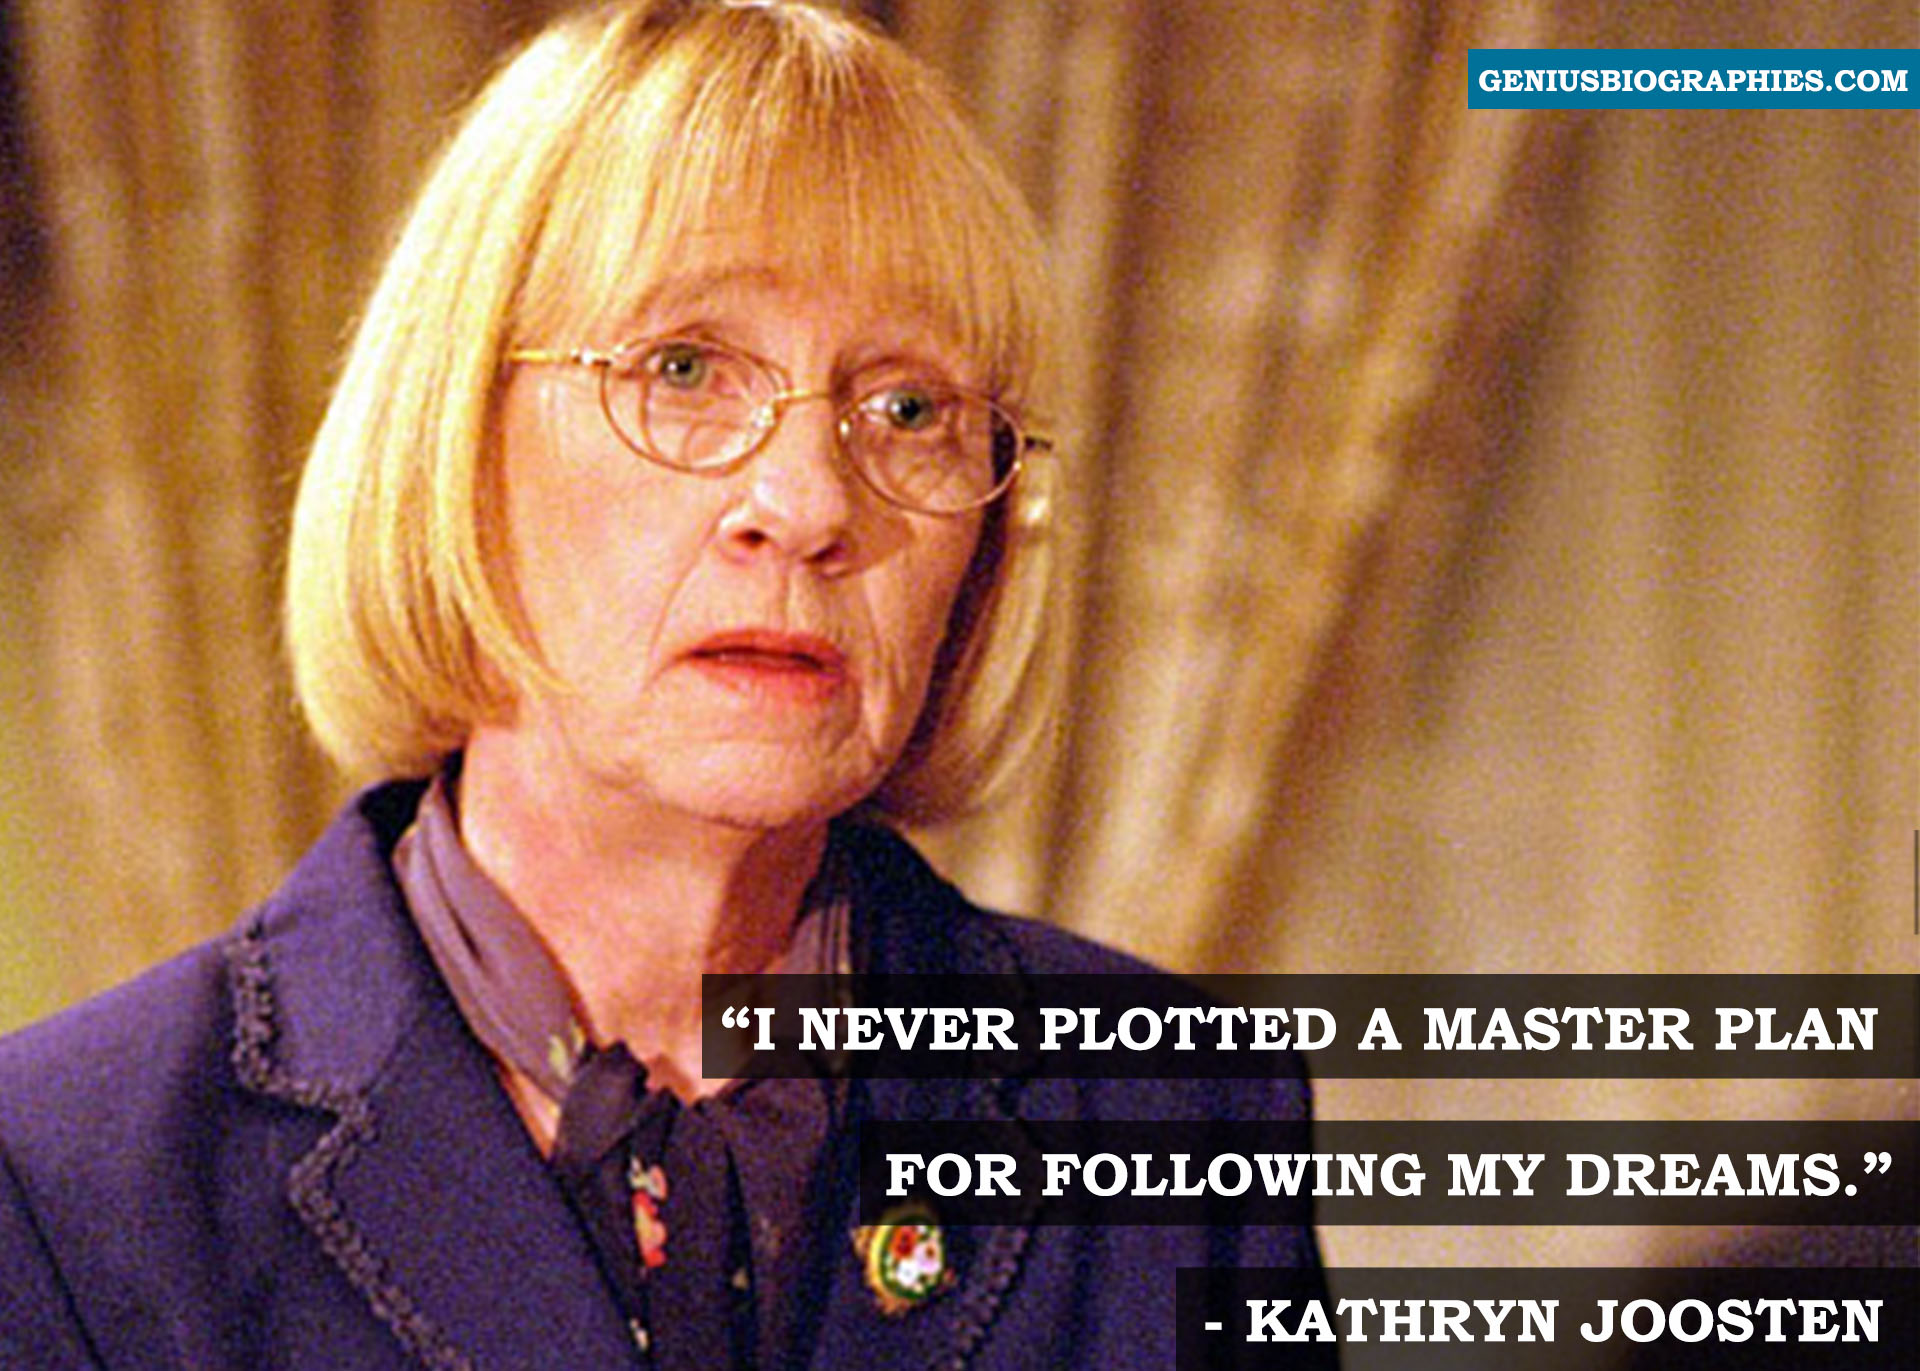 kathryn joosten cancer